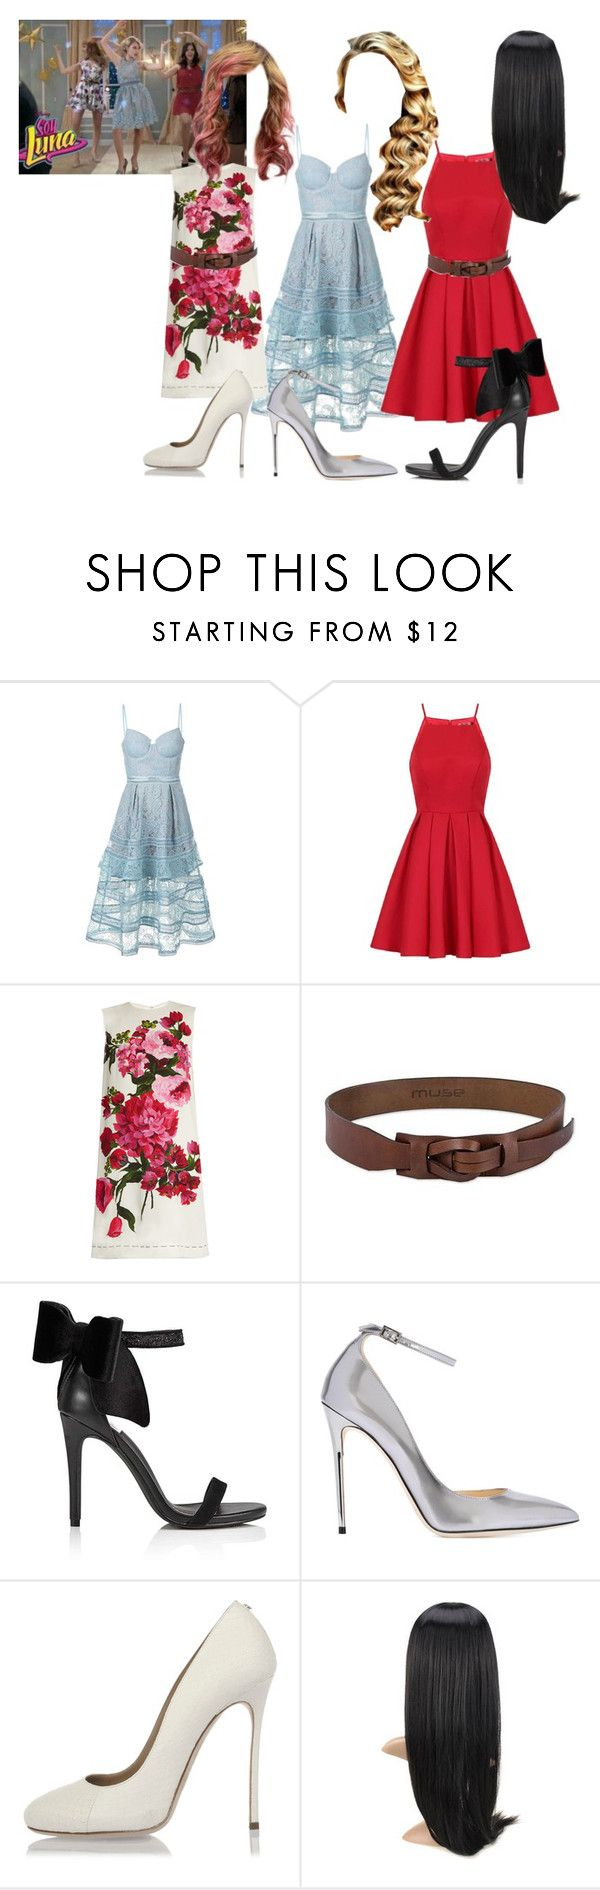 """Soy Luna"" by julia-clv ❤ liked on Polyvore featuring self-portrait, Chi Chi, Dolce&Gabbana, NOVICA, Miss Selfridge, Jimmy Choo and Dsquared2"